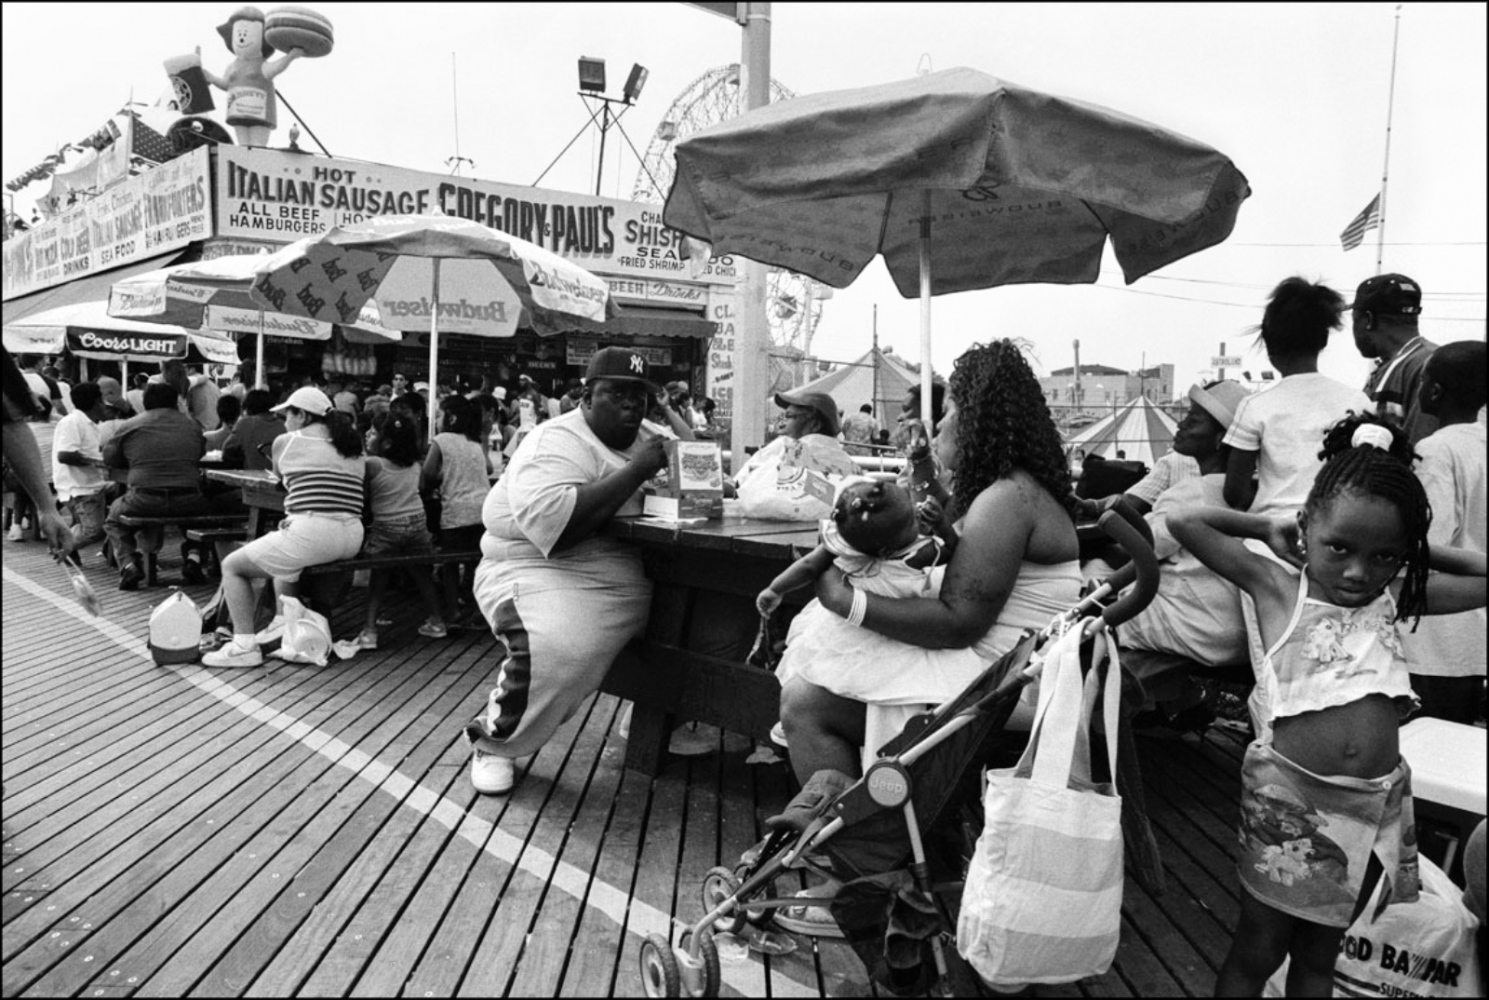 Lunch, Coney Island, NY, July 4, 2004